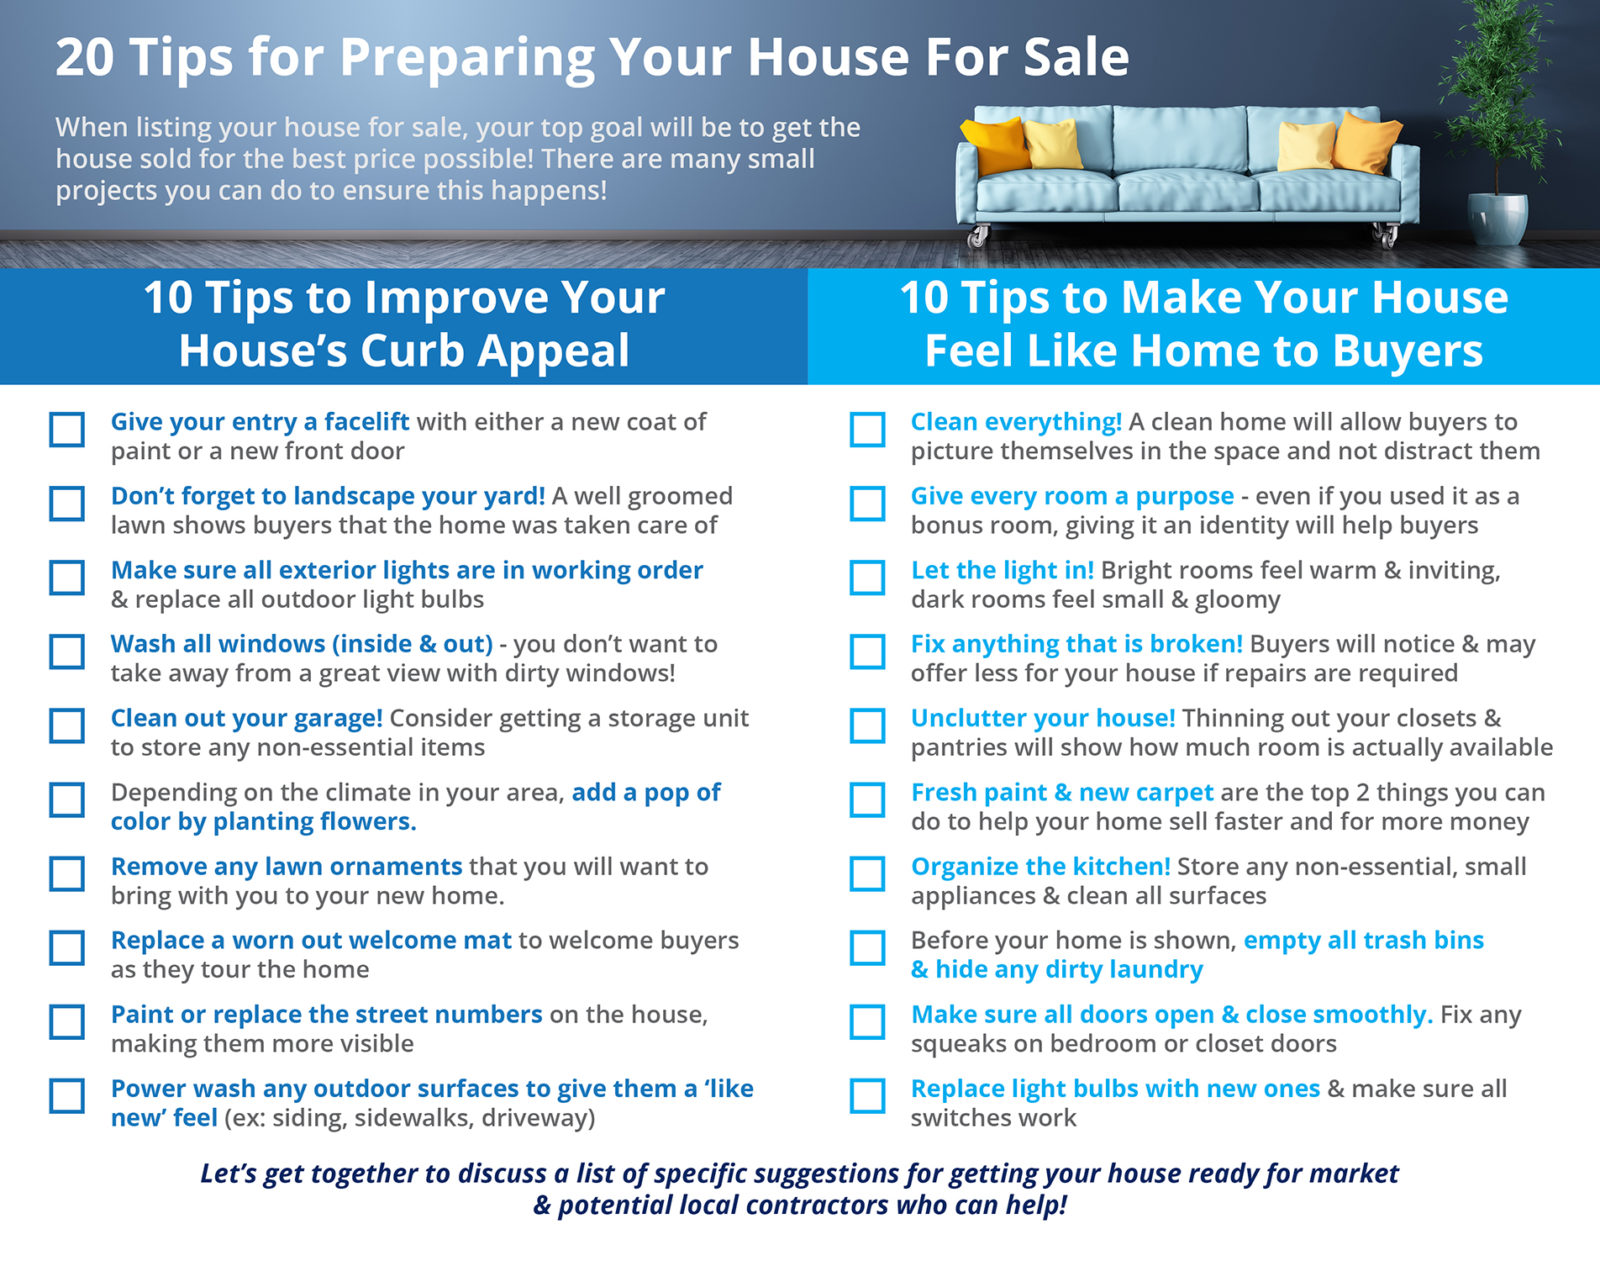 20 Tips for Preparing Your House for Sale in 2019